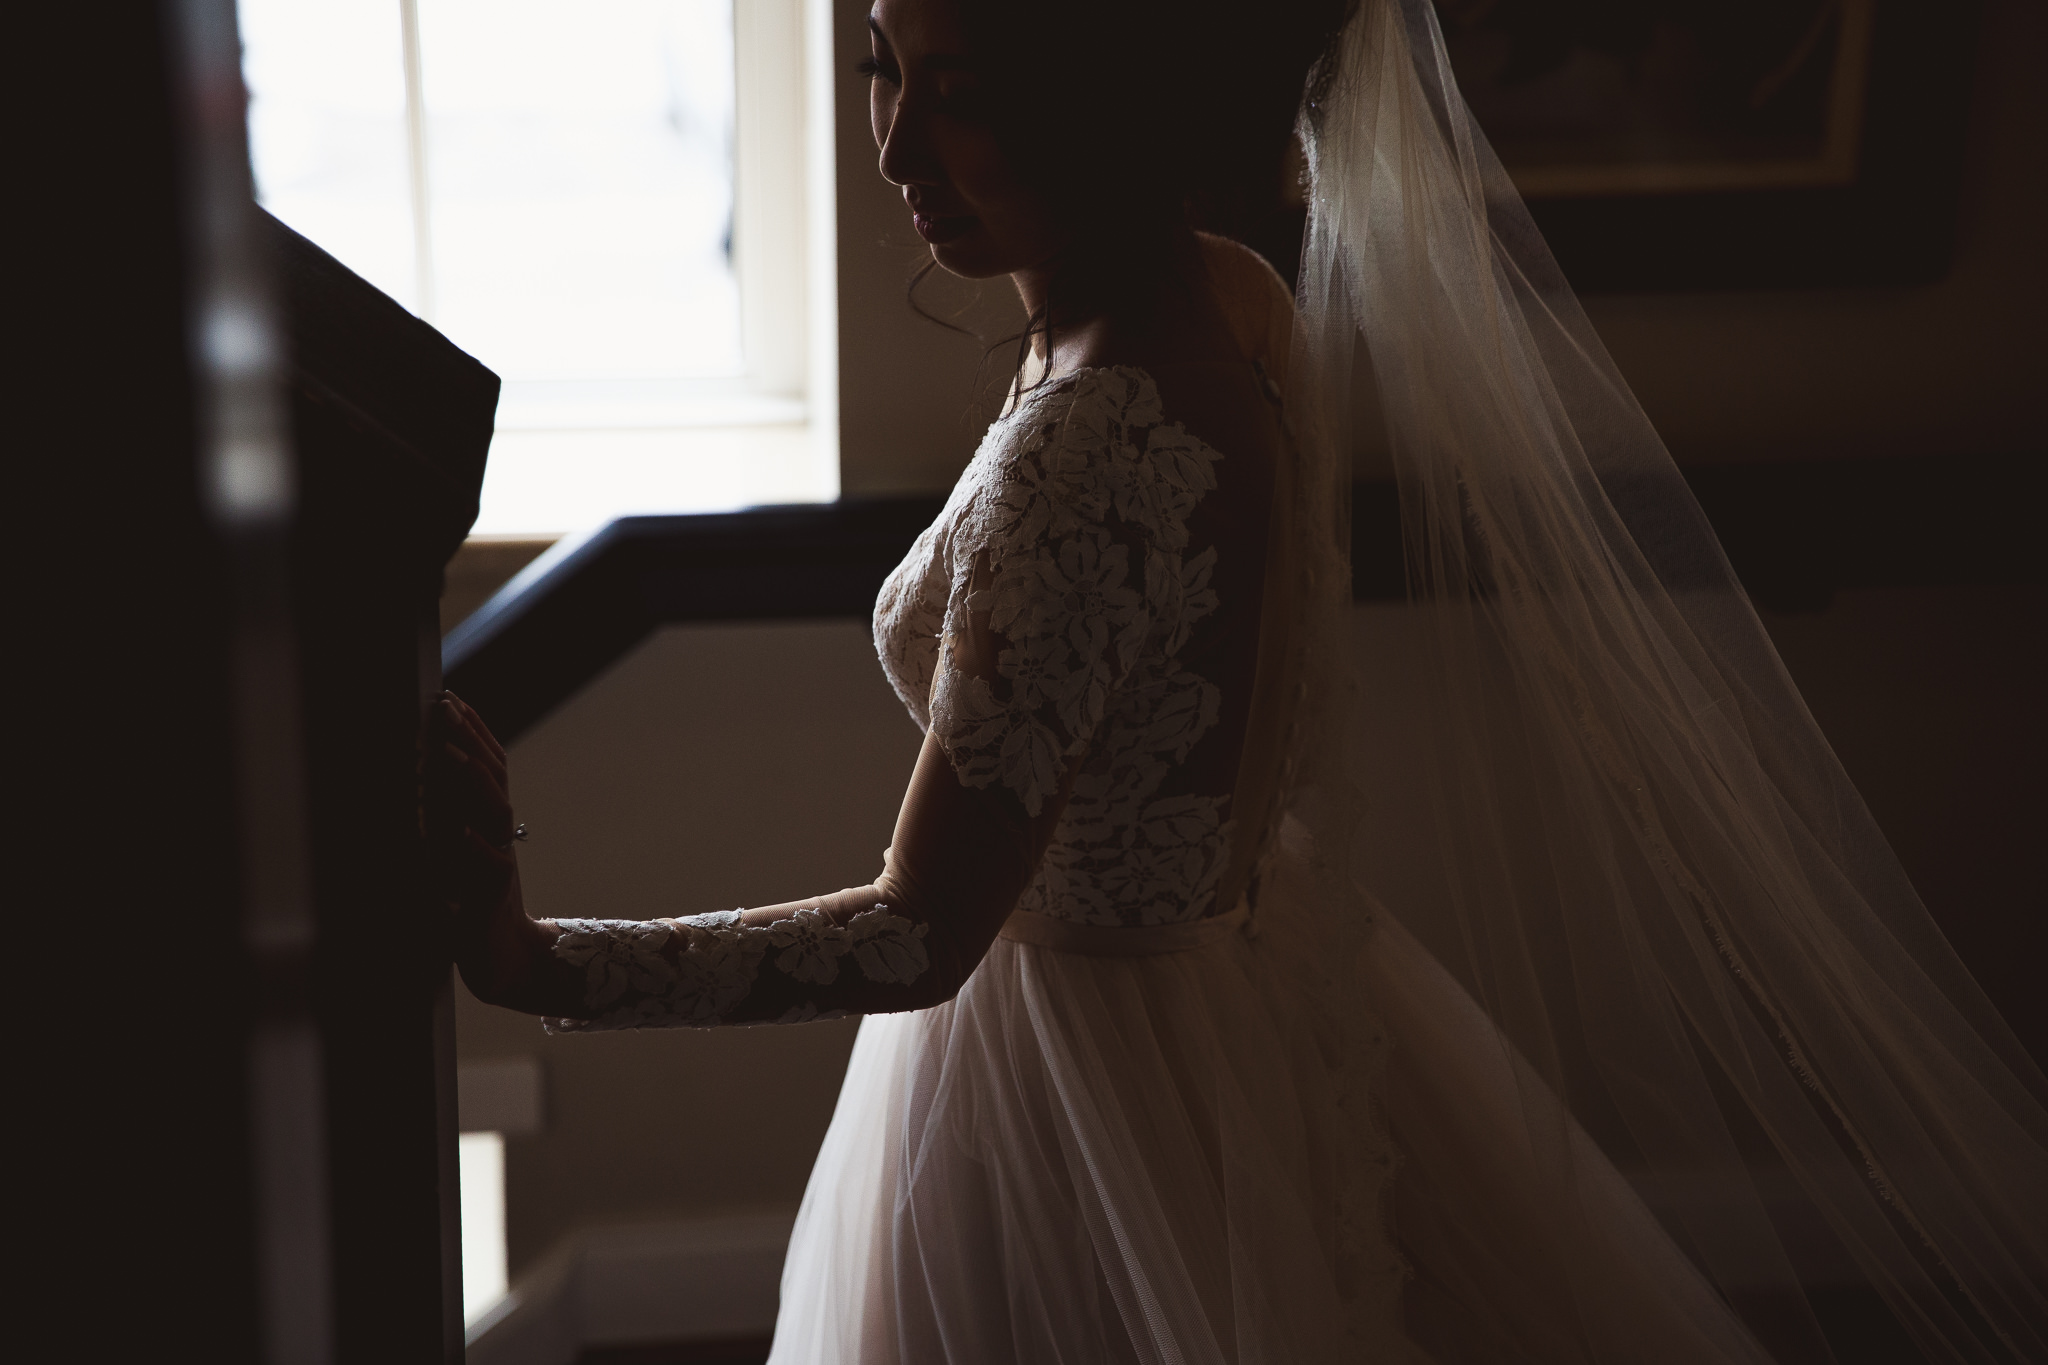 Intimate Wedding vs Elopement: What's the Difference?